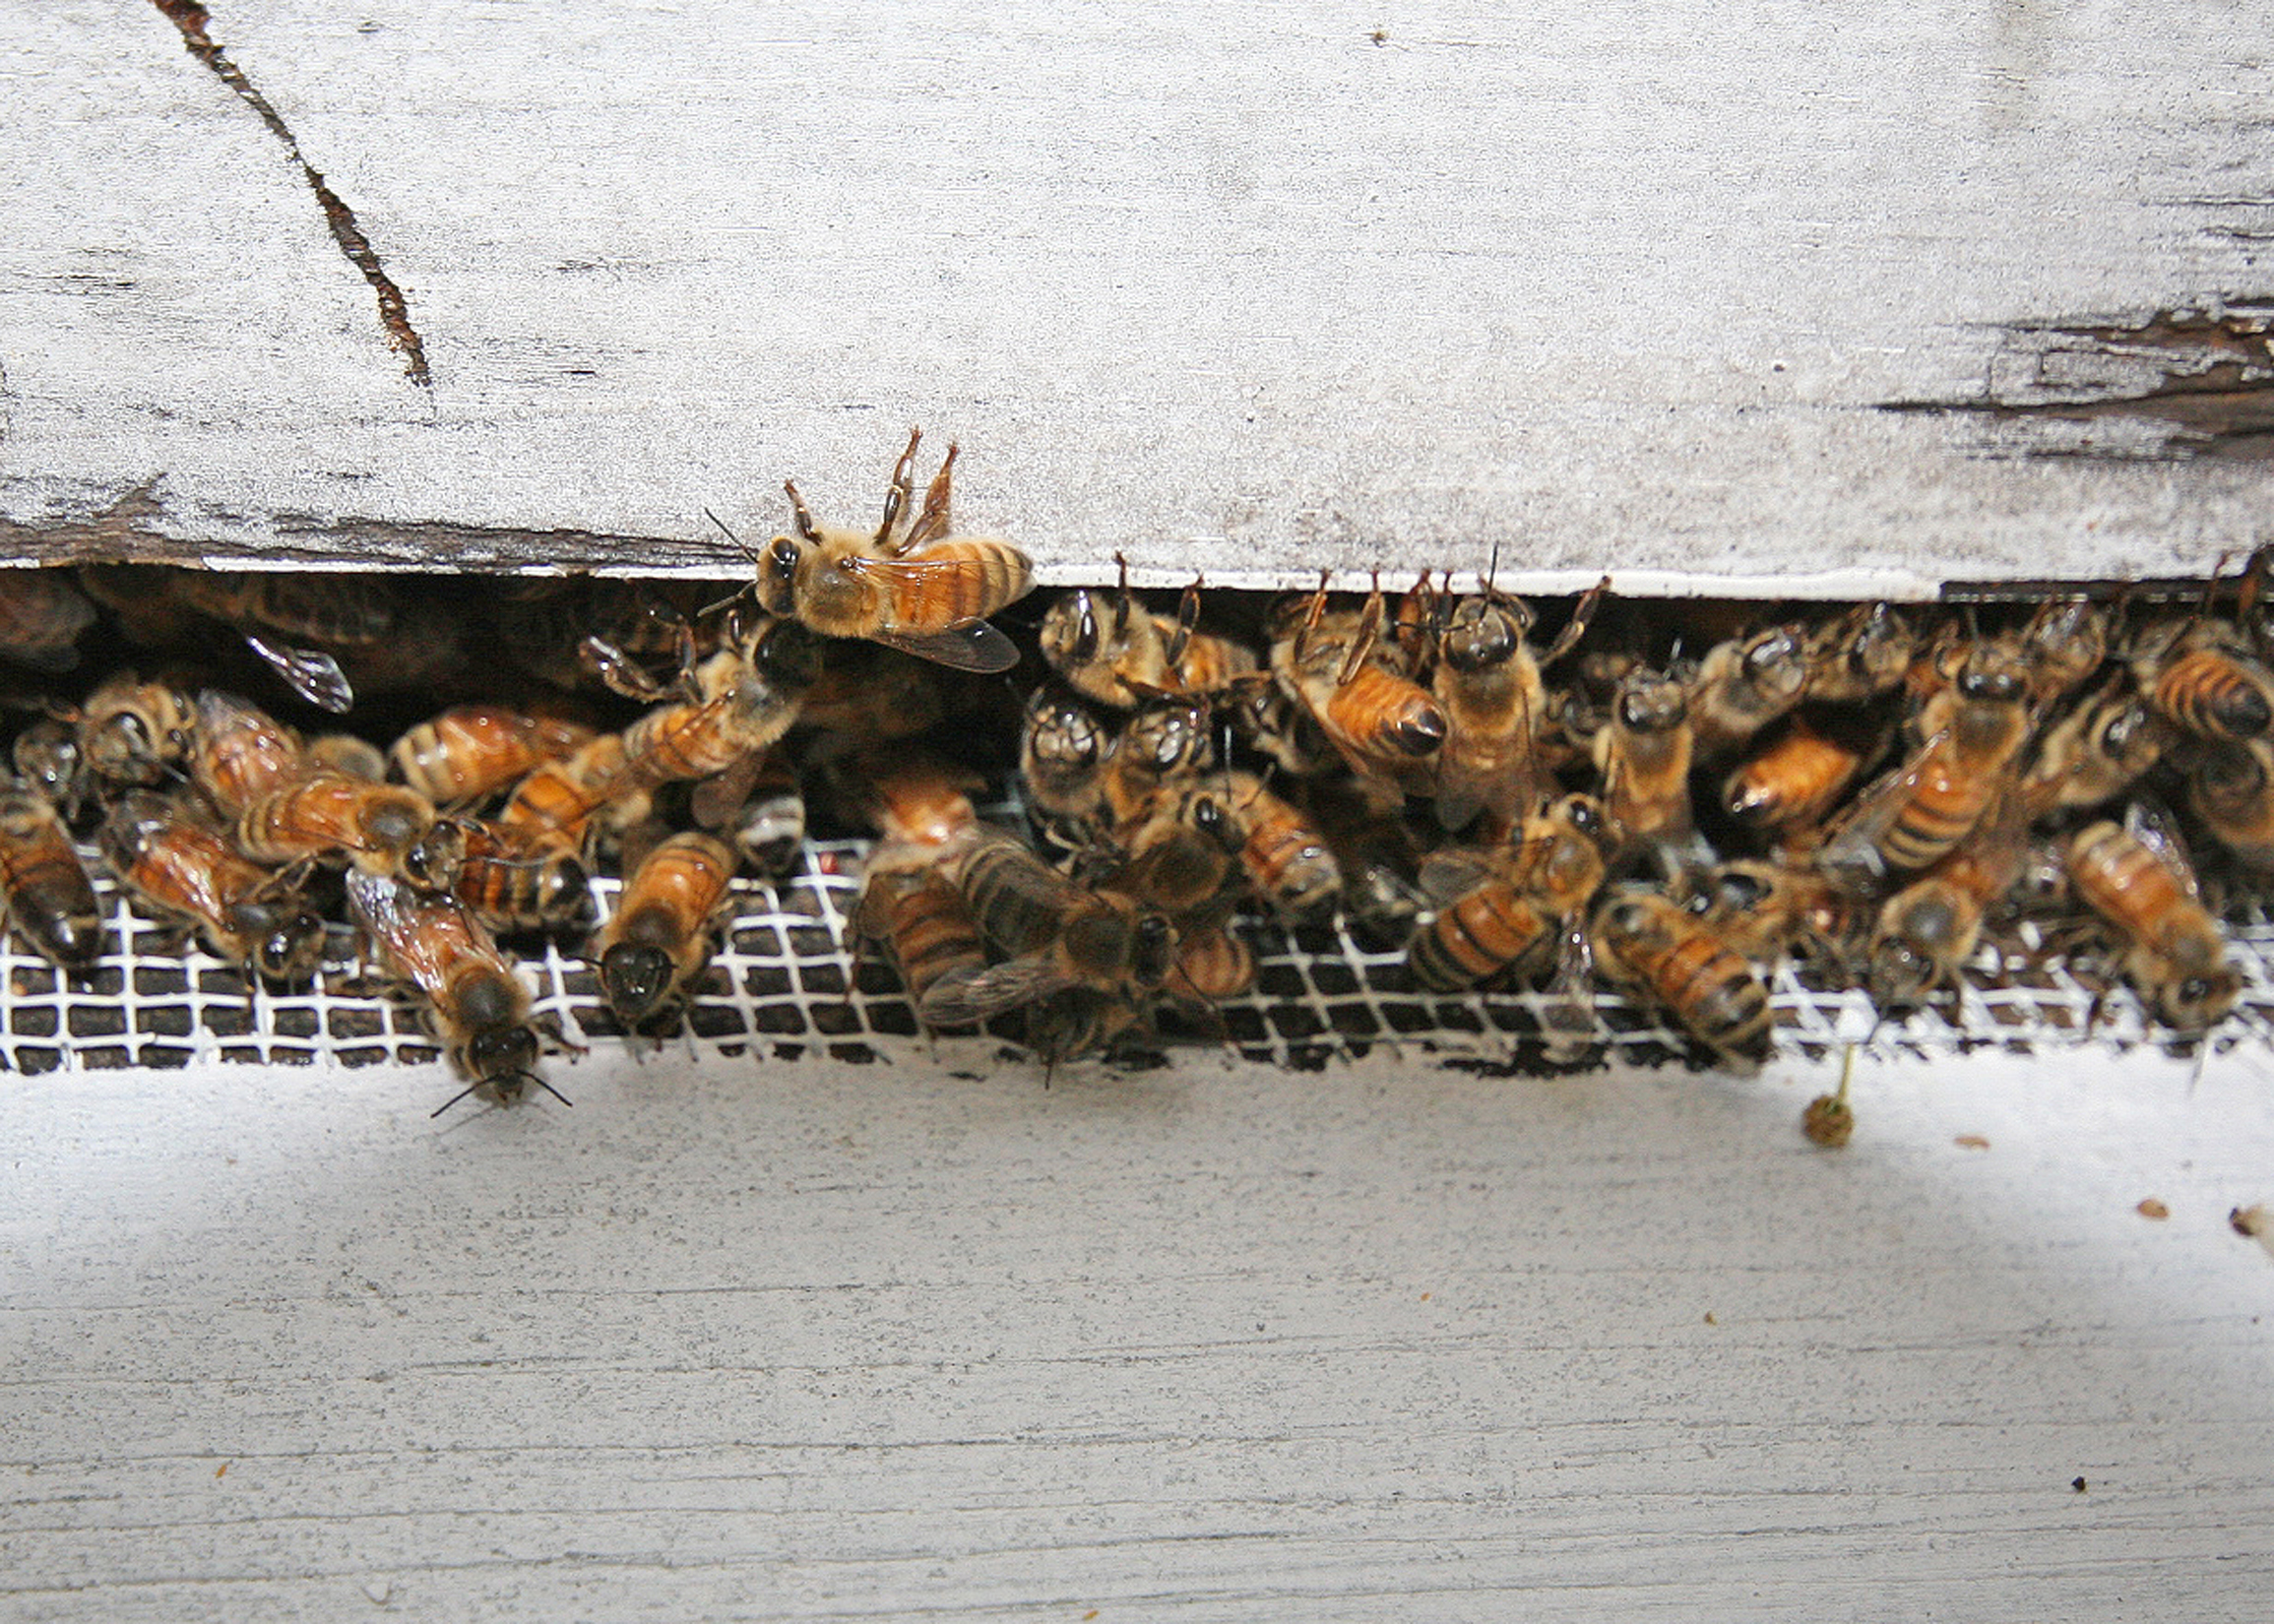 While bee populations have been declining for the past several decades, urban beekeeping and public awareness of pollinators is increasing.